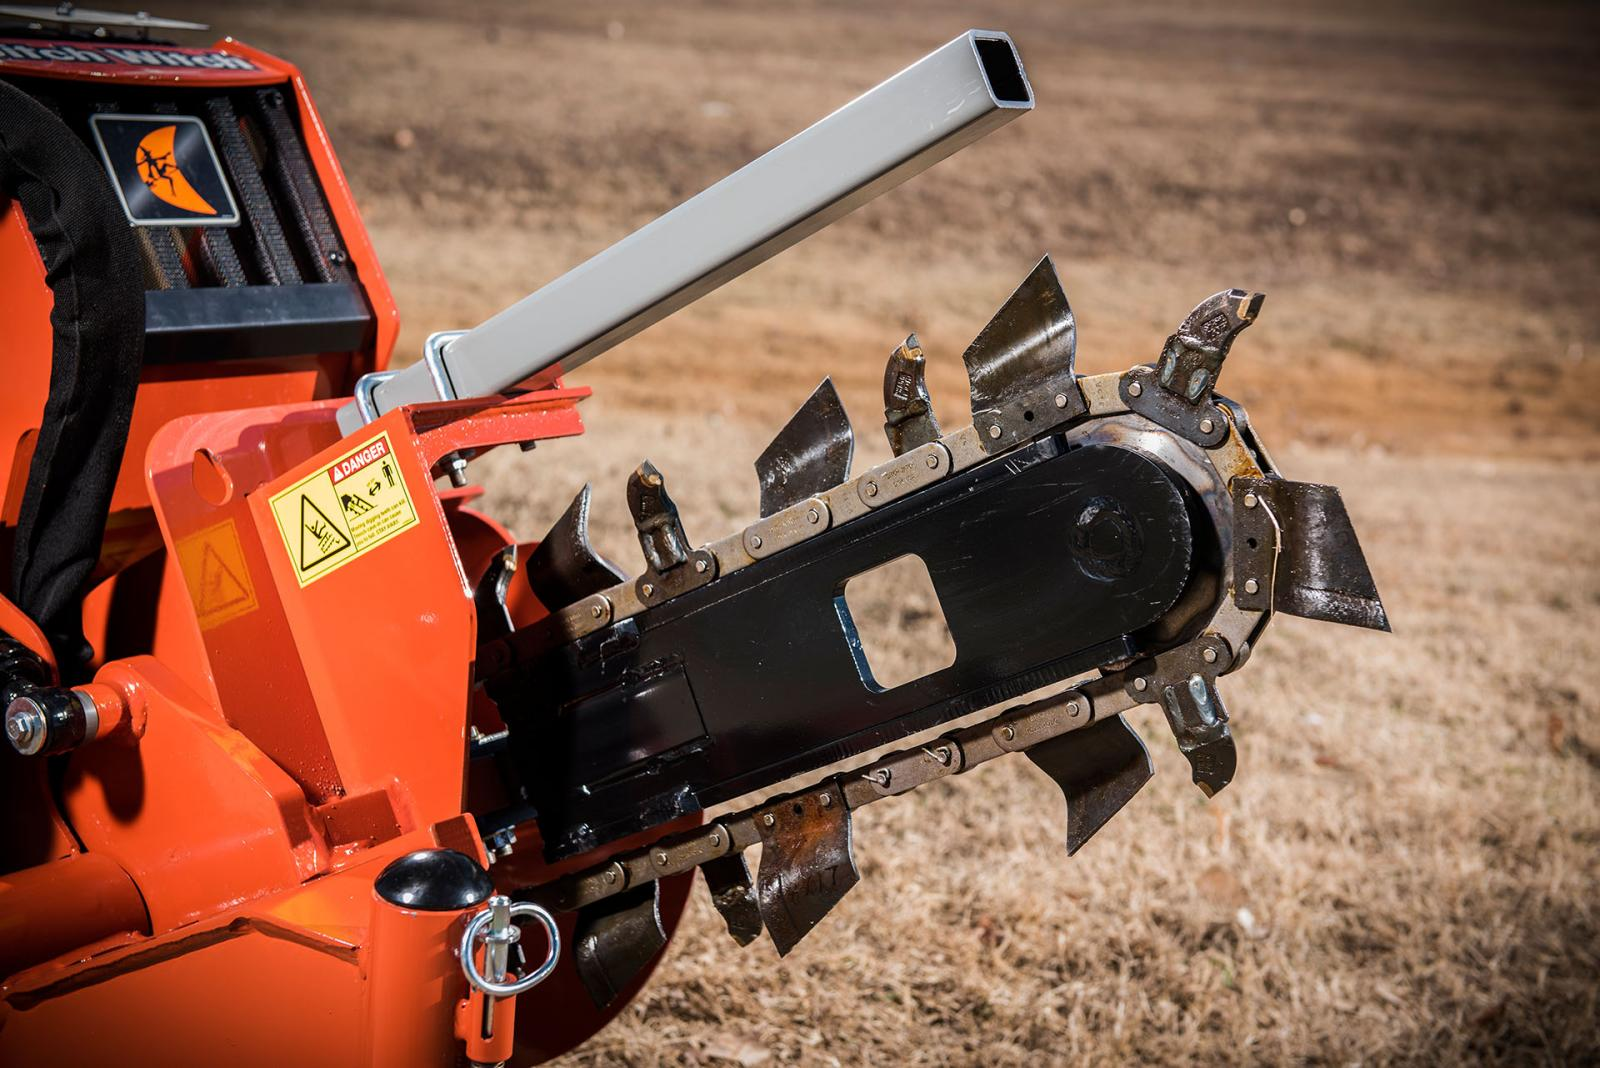 Ditch Witch C16 Walk-Behind Trencher